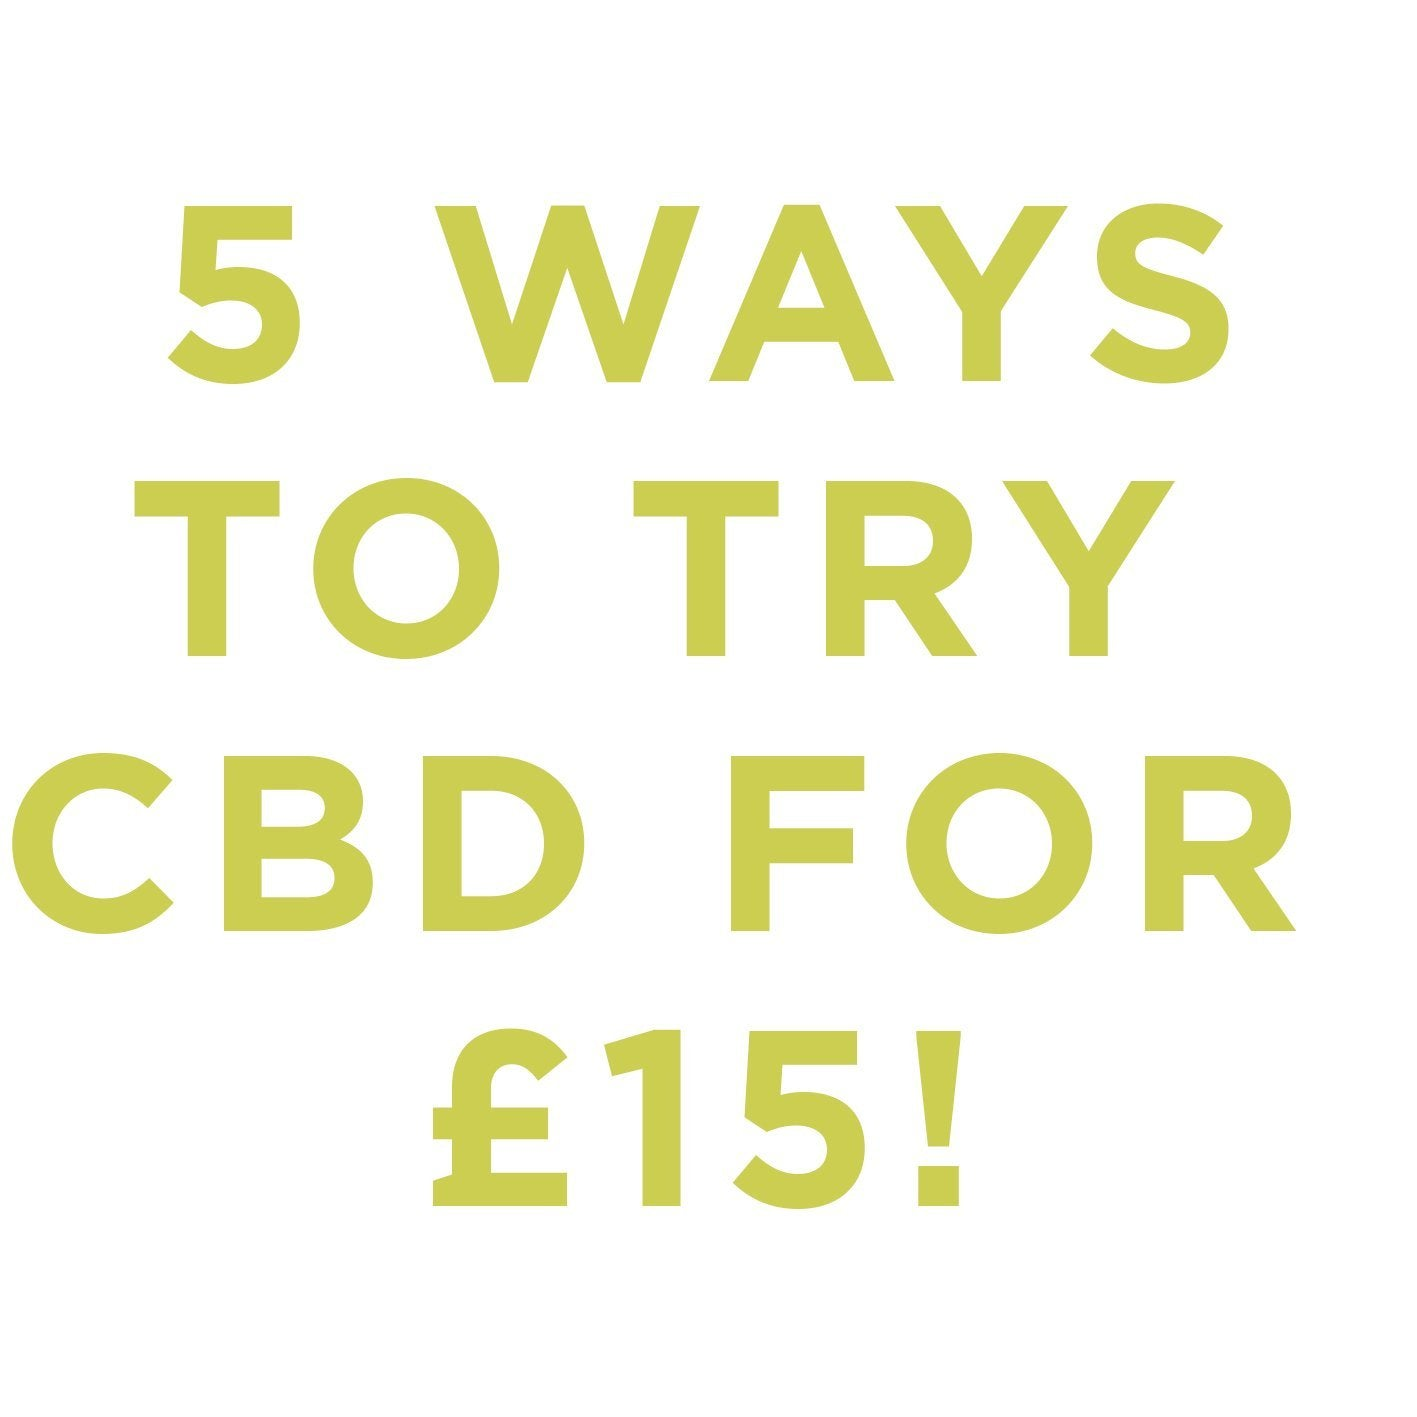 5 Ways to try CBD properly for under £15